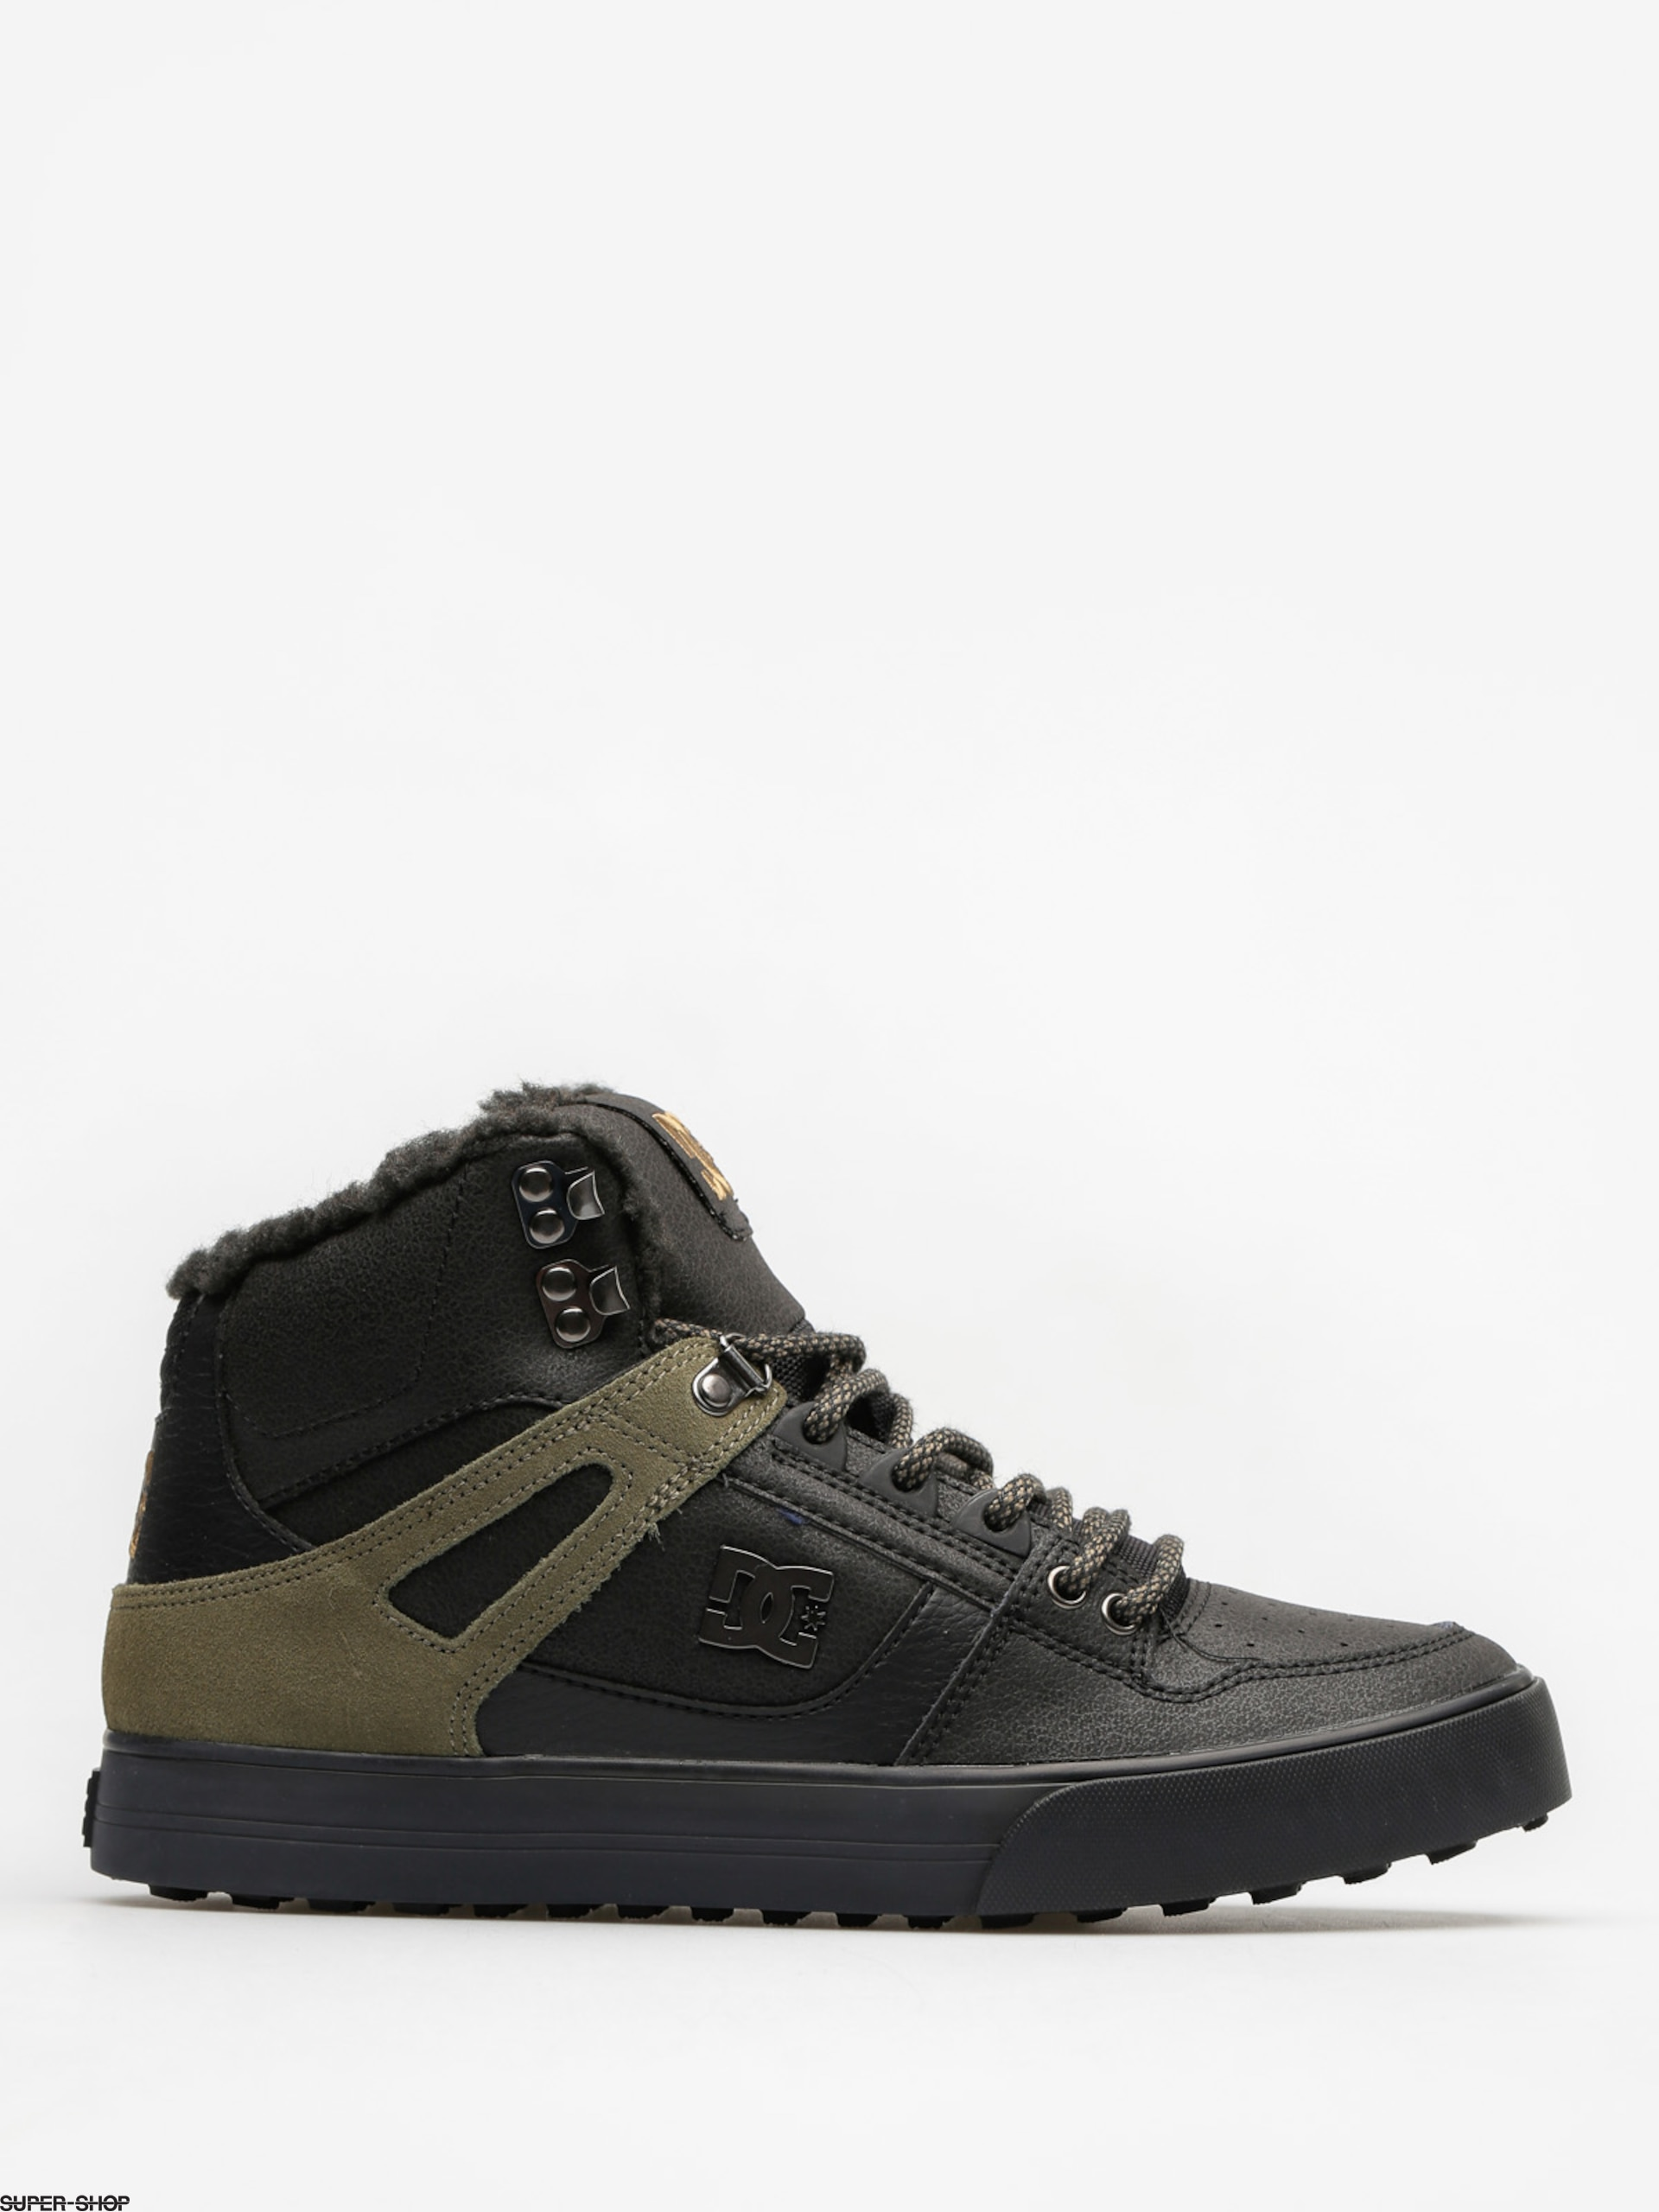 DC Winter shoes Spartan High Wc Wnt (black/olive)